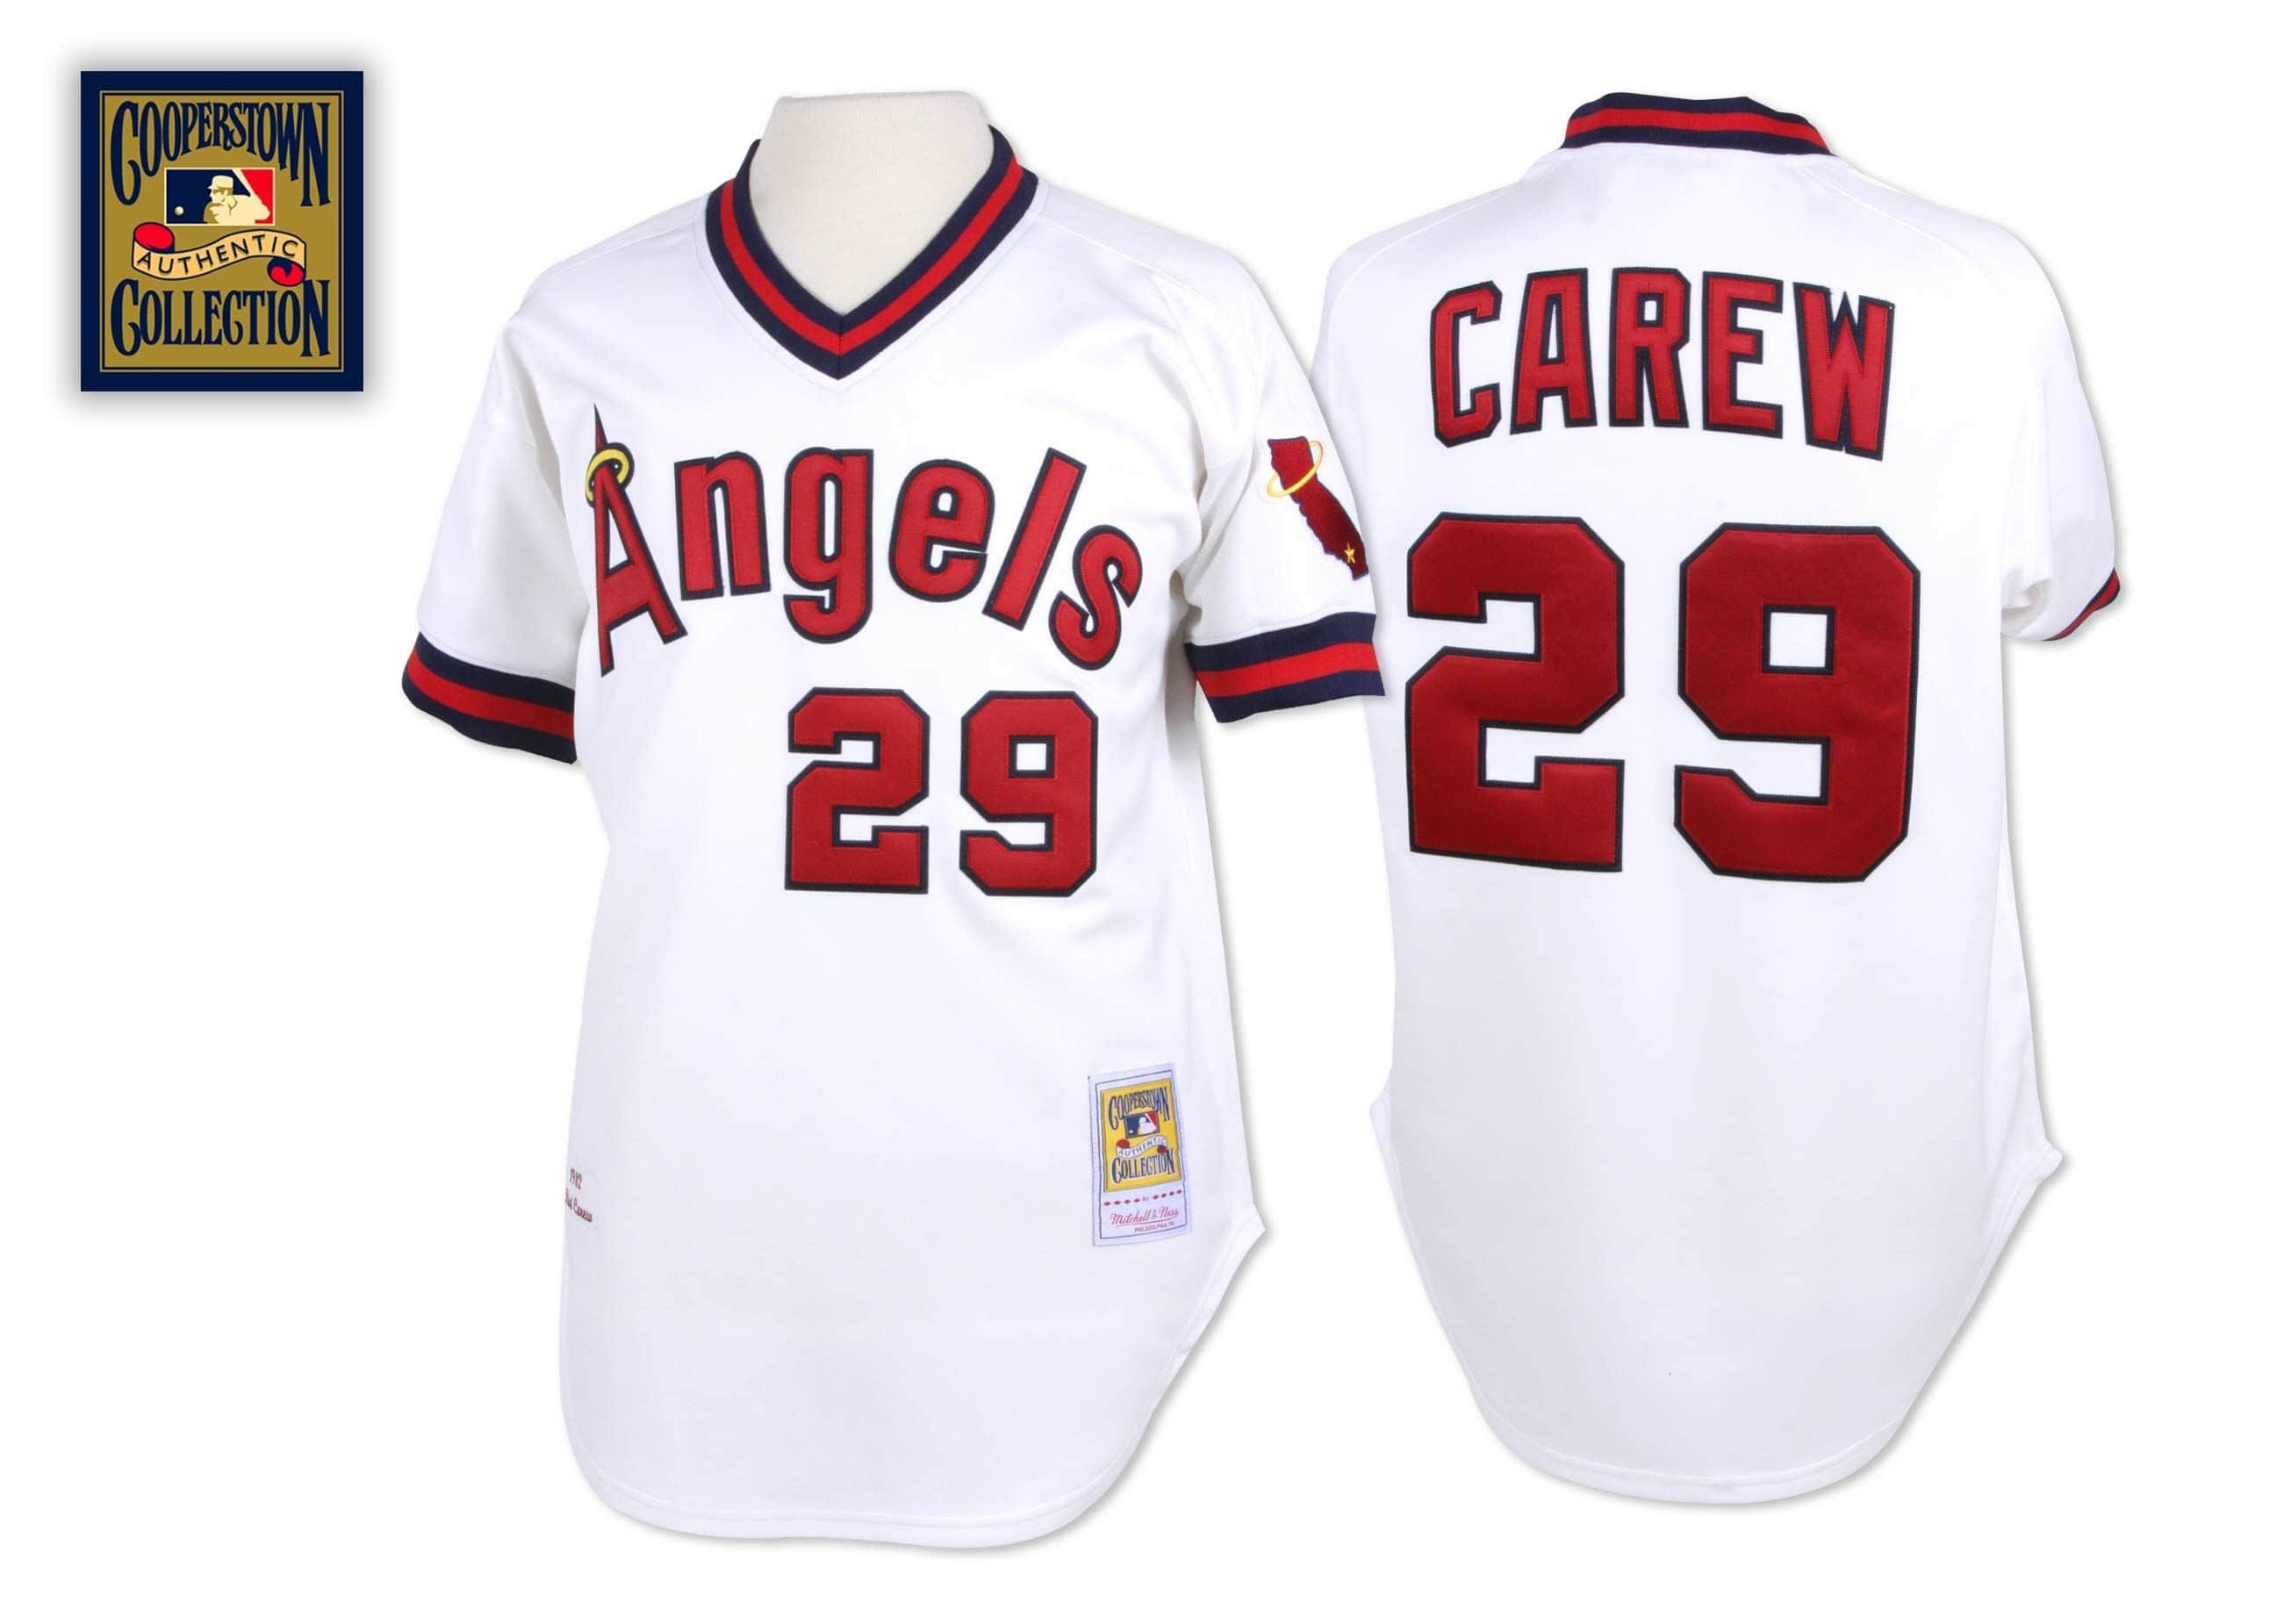 Rod Carew 1982 Authentic Jersey California Angels